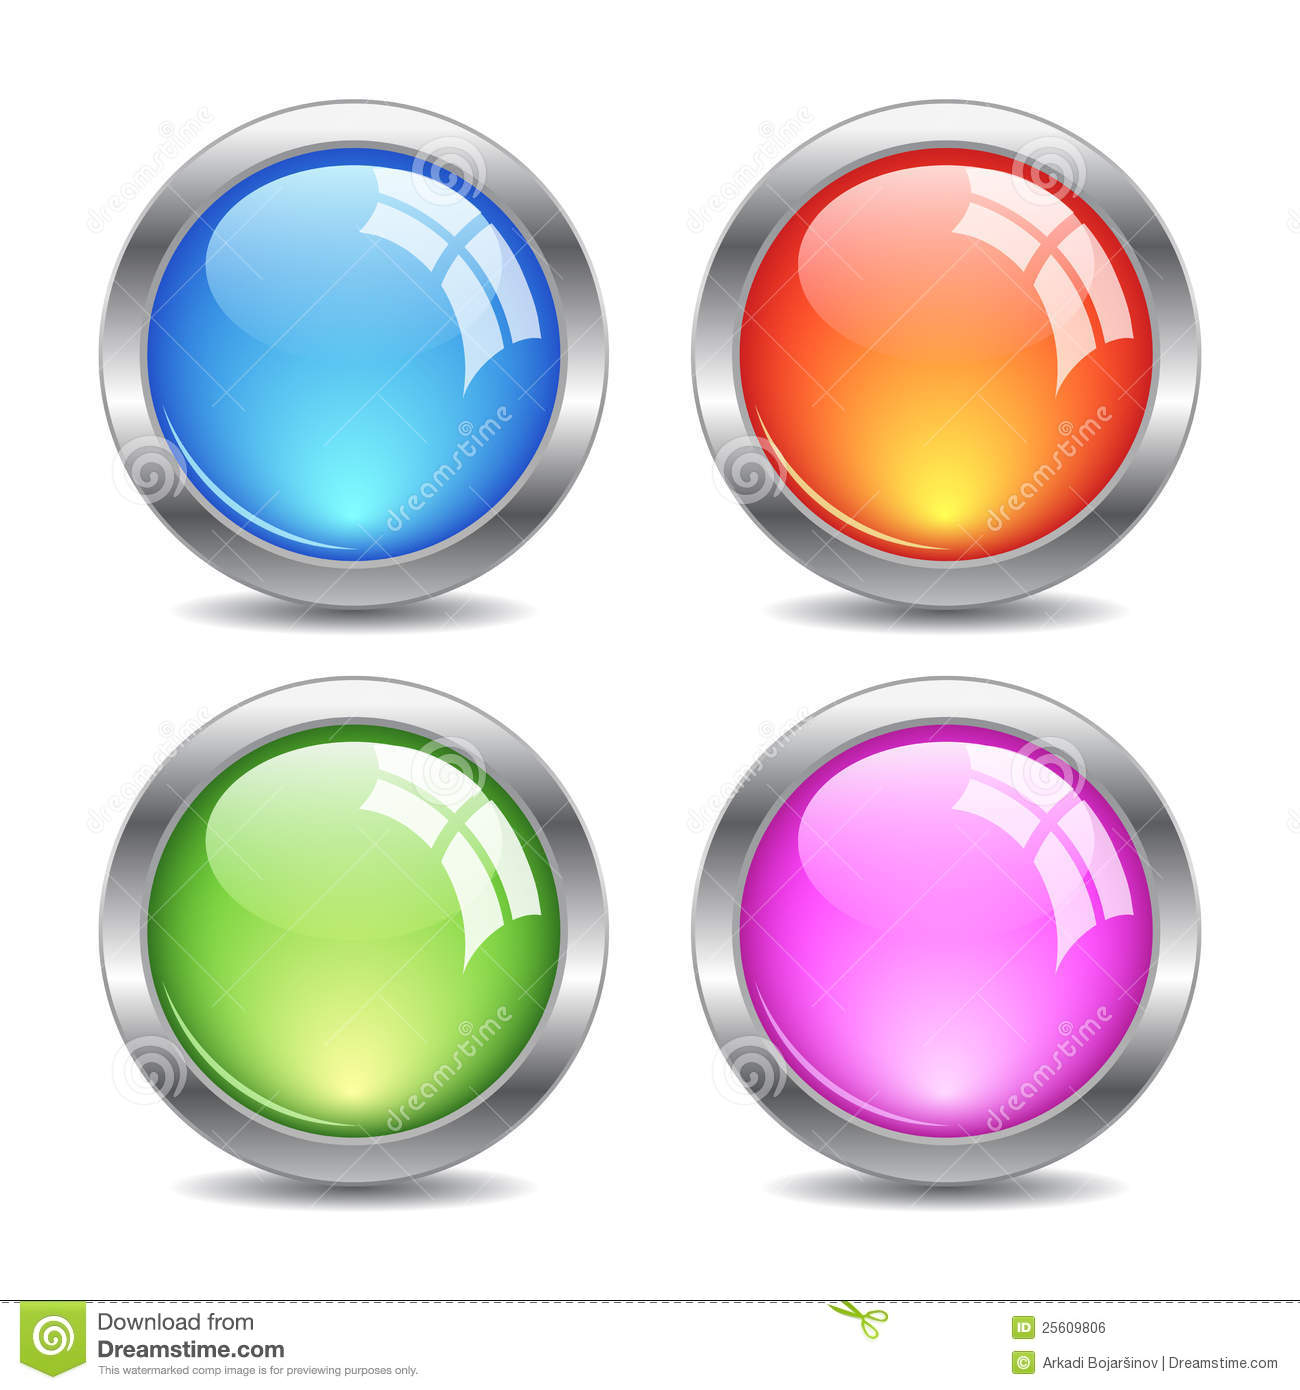 Glass Vector Buttons Royalty Free Stock Image - Image: 25609806